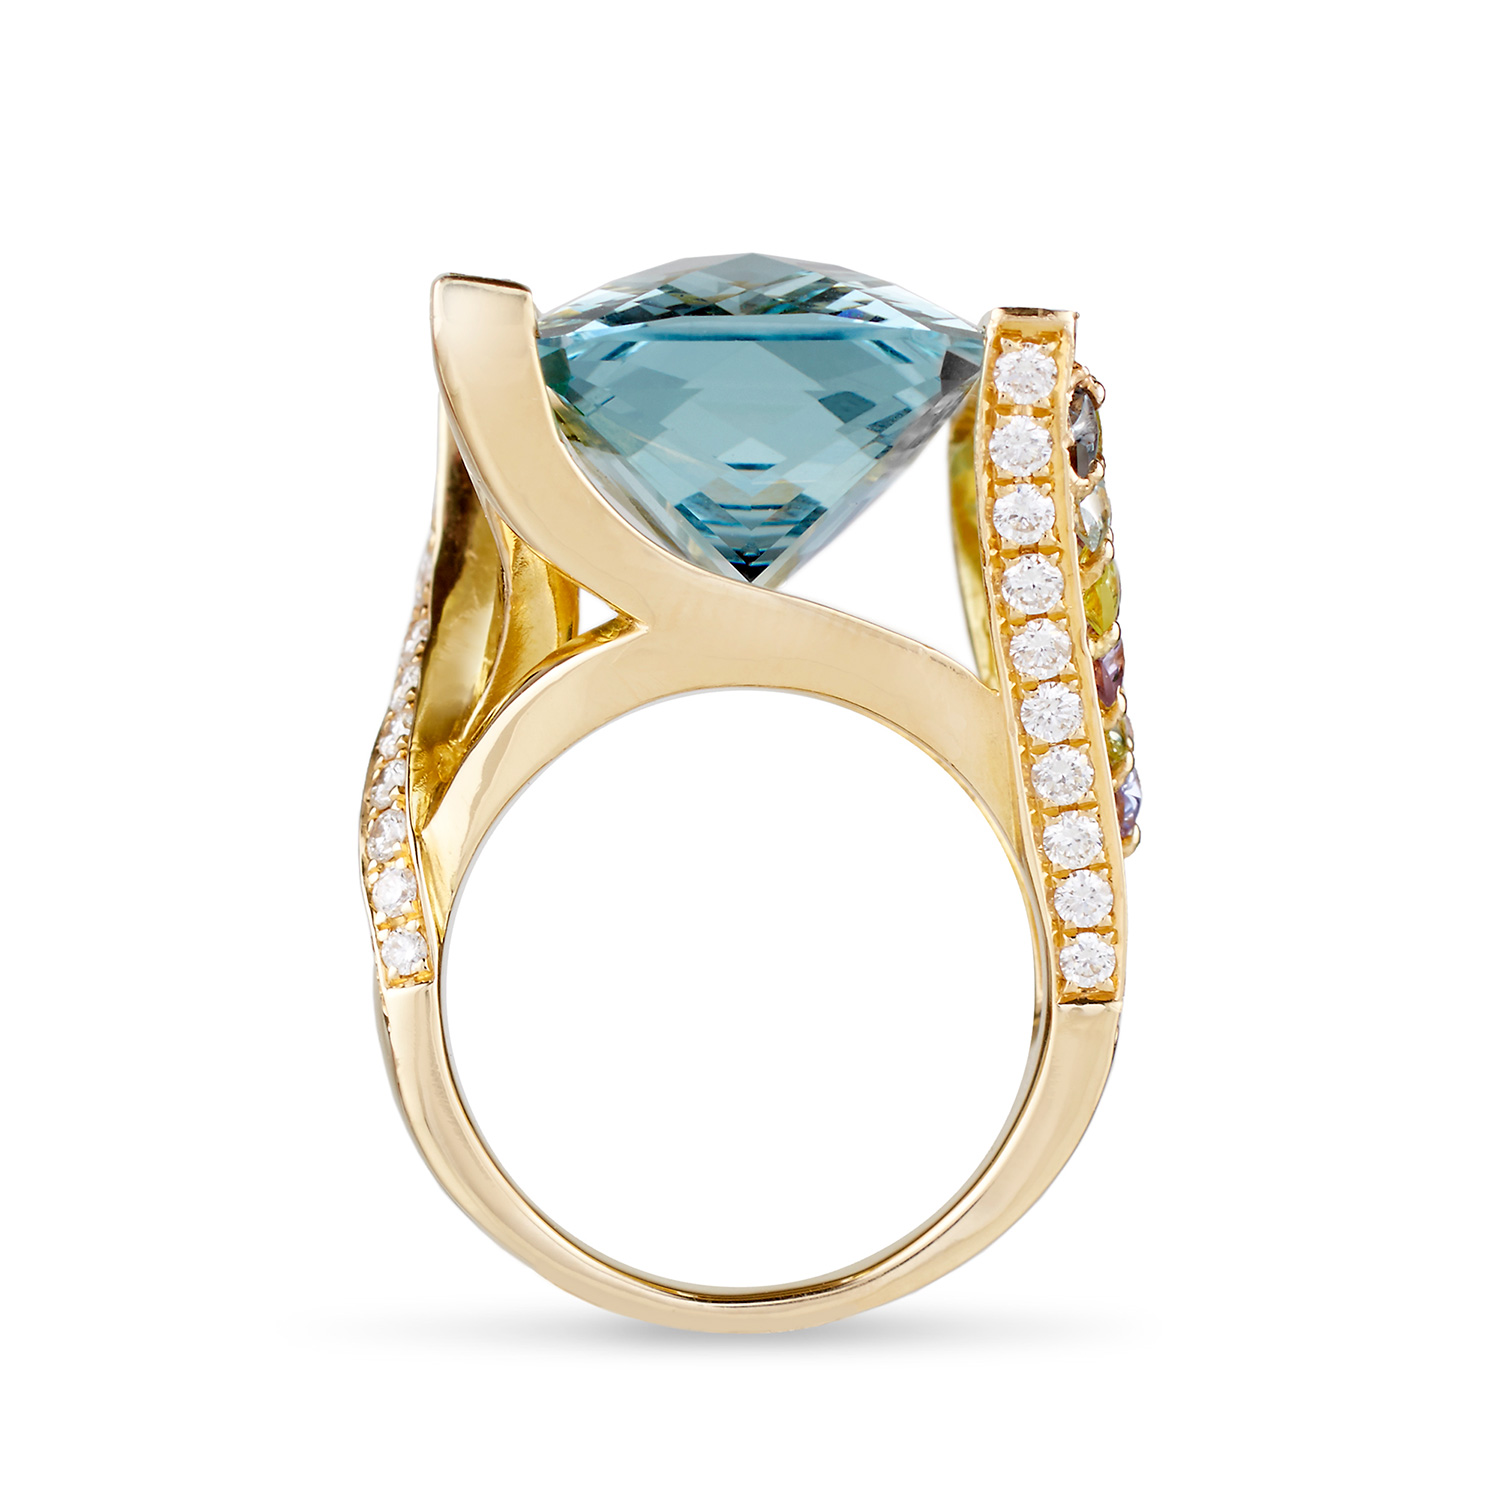 E Commerce Product Jewelry Photography on White Background Dallas Texas Aquamarine & Diamond Ring